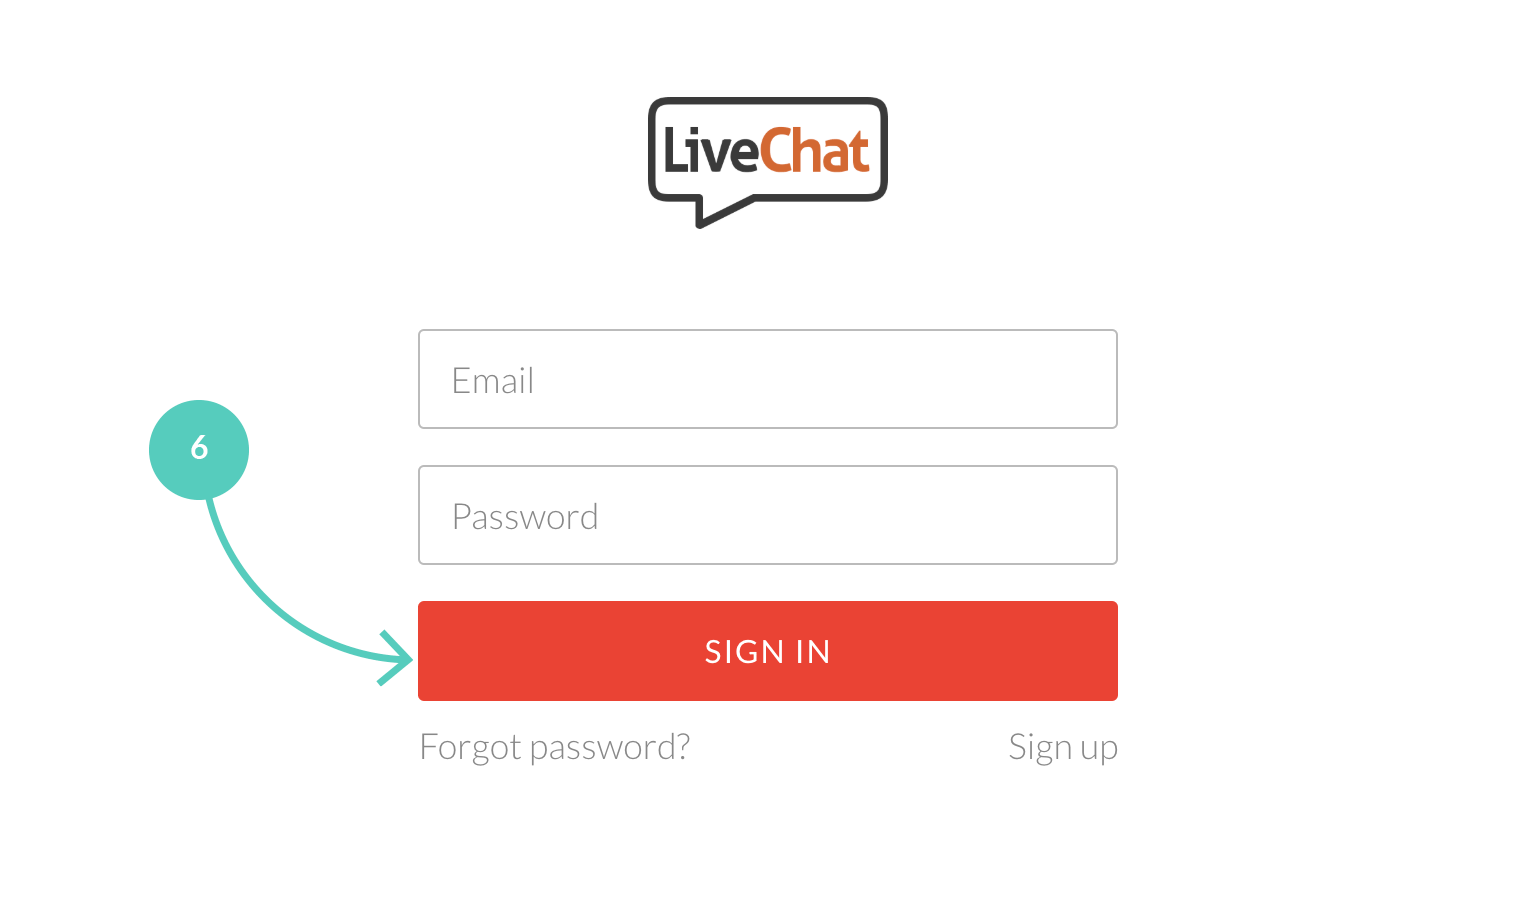 Shopify with LiveChat: Sign to your LiveChat account